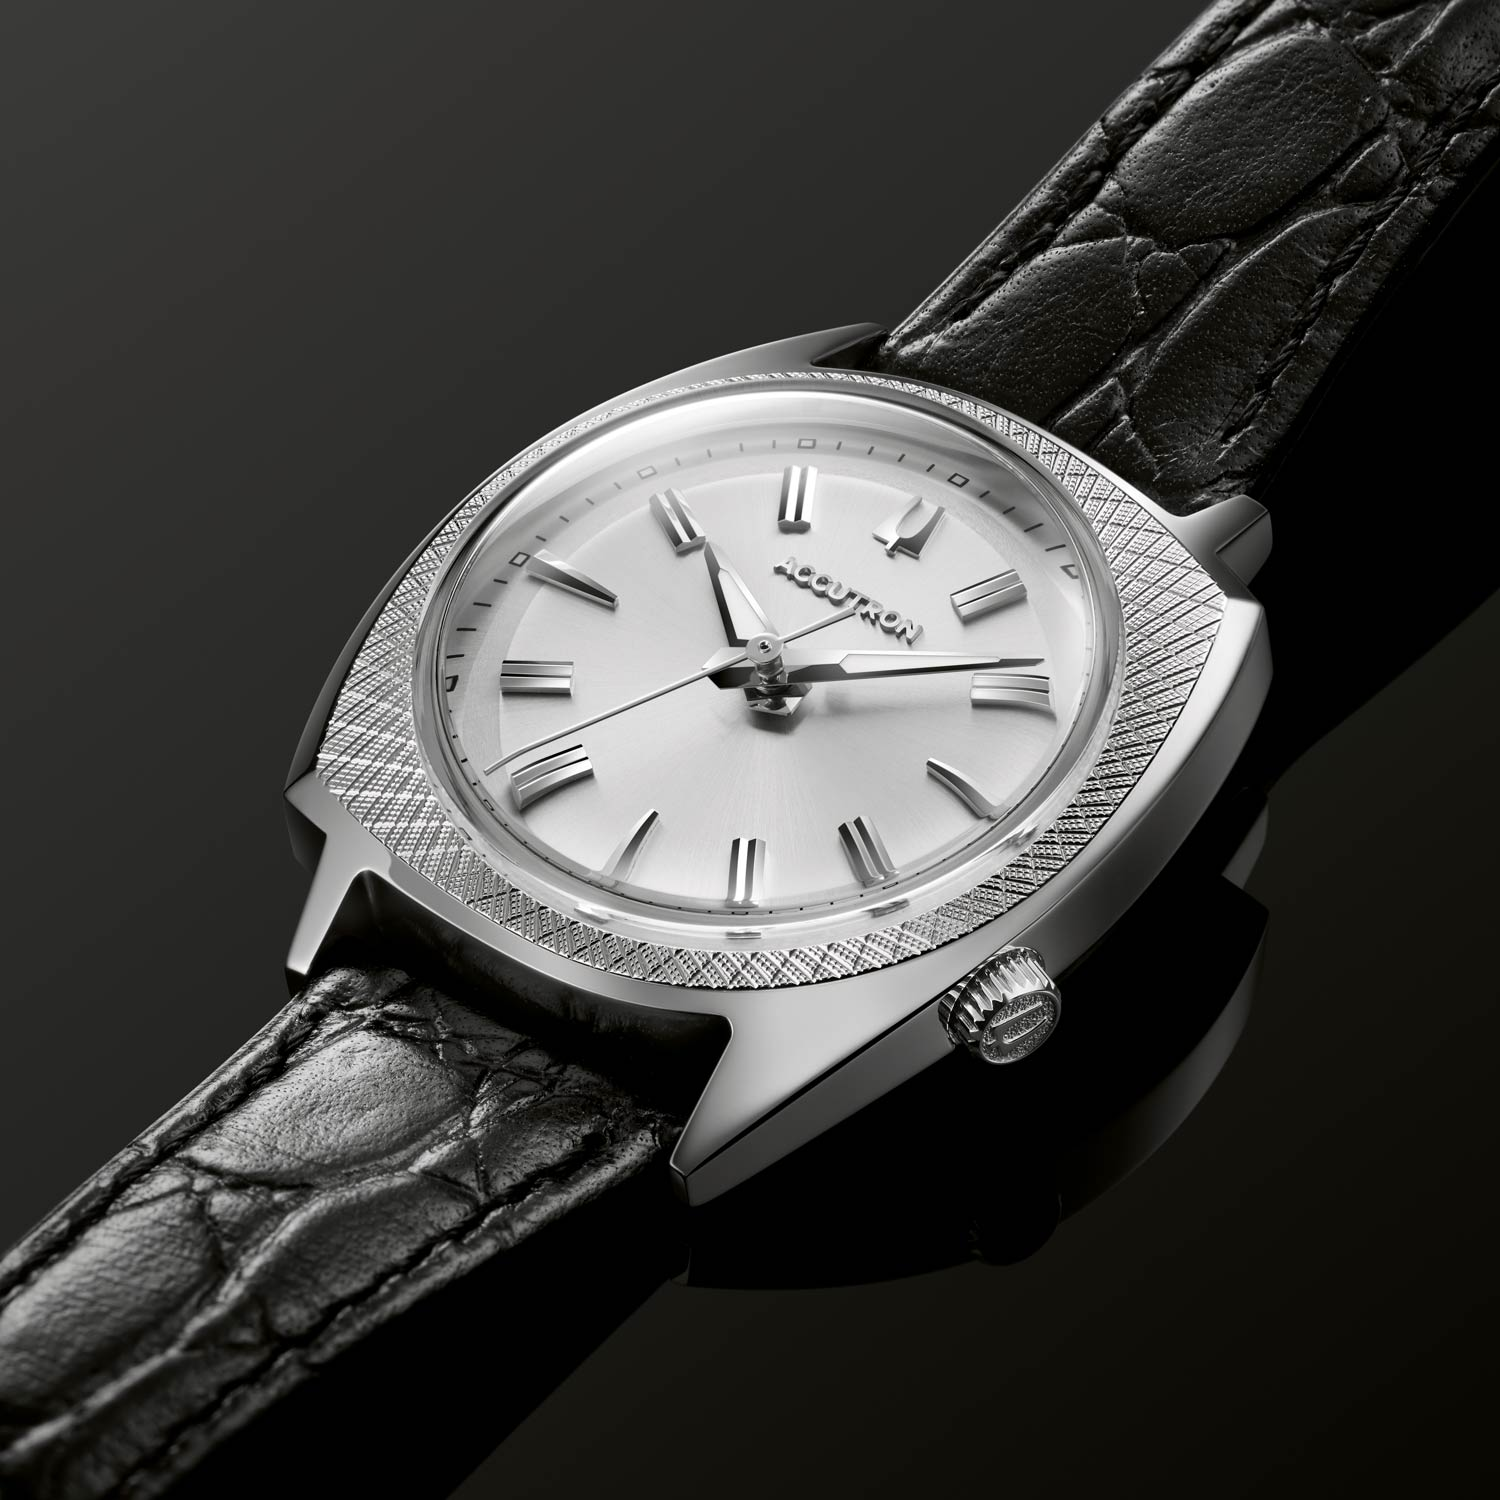 Both watches are water resistant to 30M, include an updated Swiss-made 26-jewel movement, and are individually numbered and limited to 600 pieces.